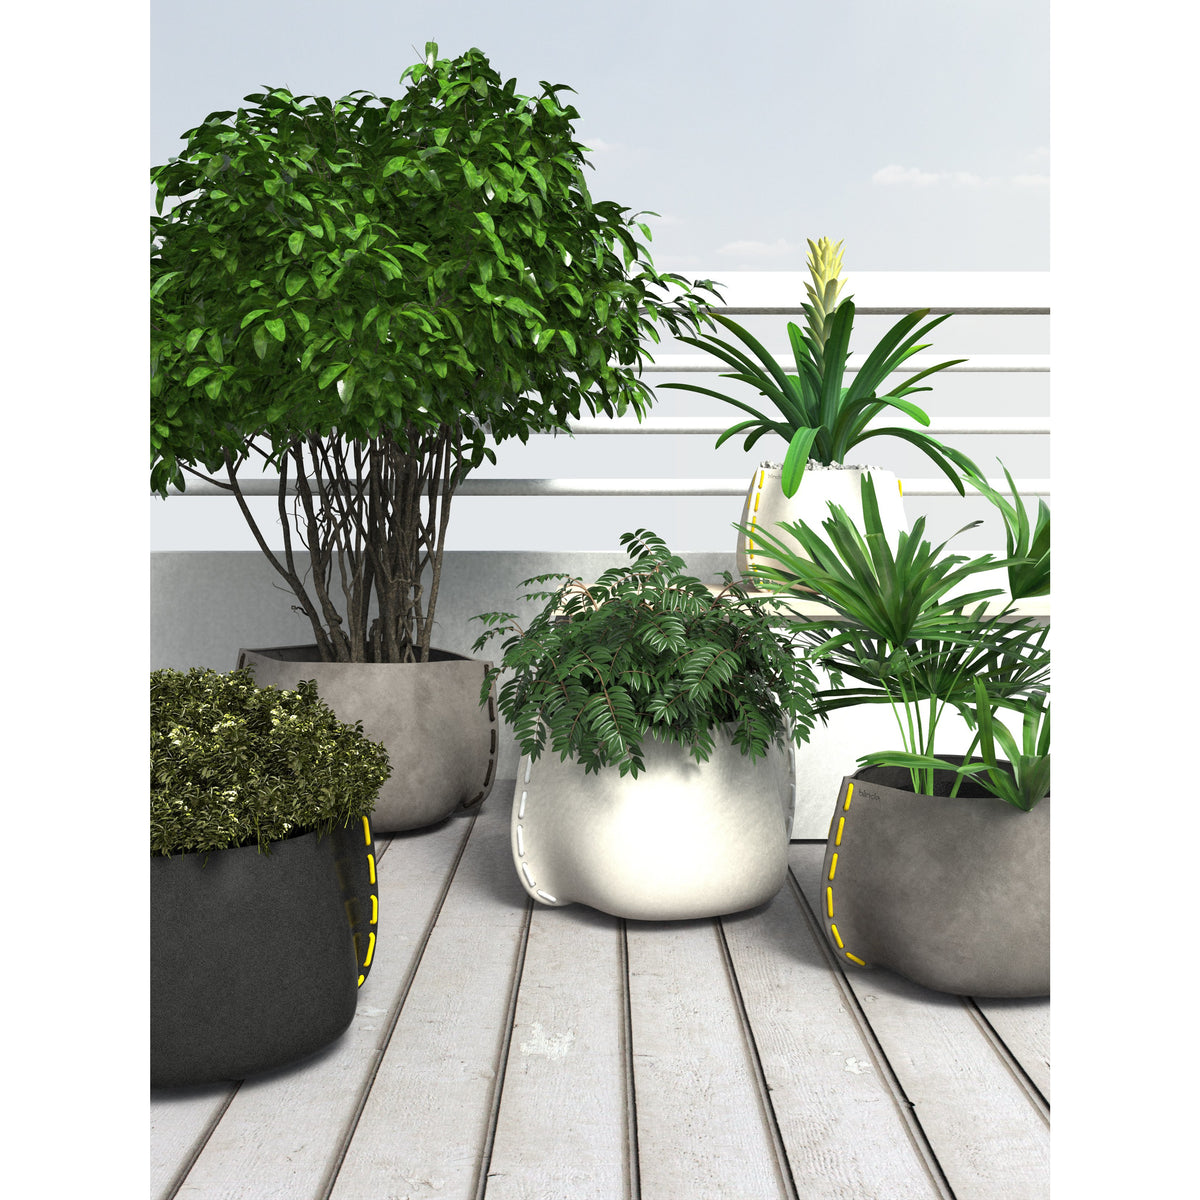 Stitch 50 Designer Pot Plant - Outdoor Living Essentials